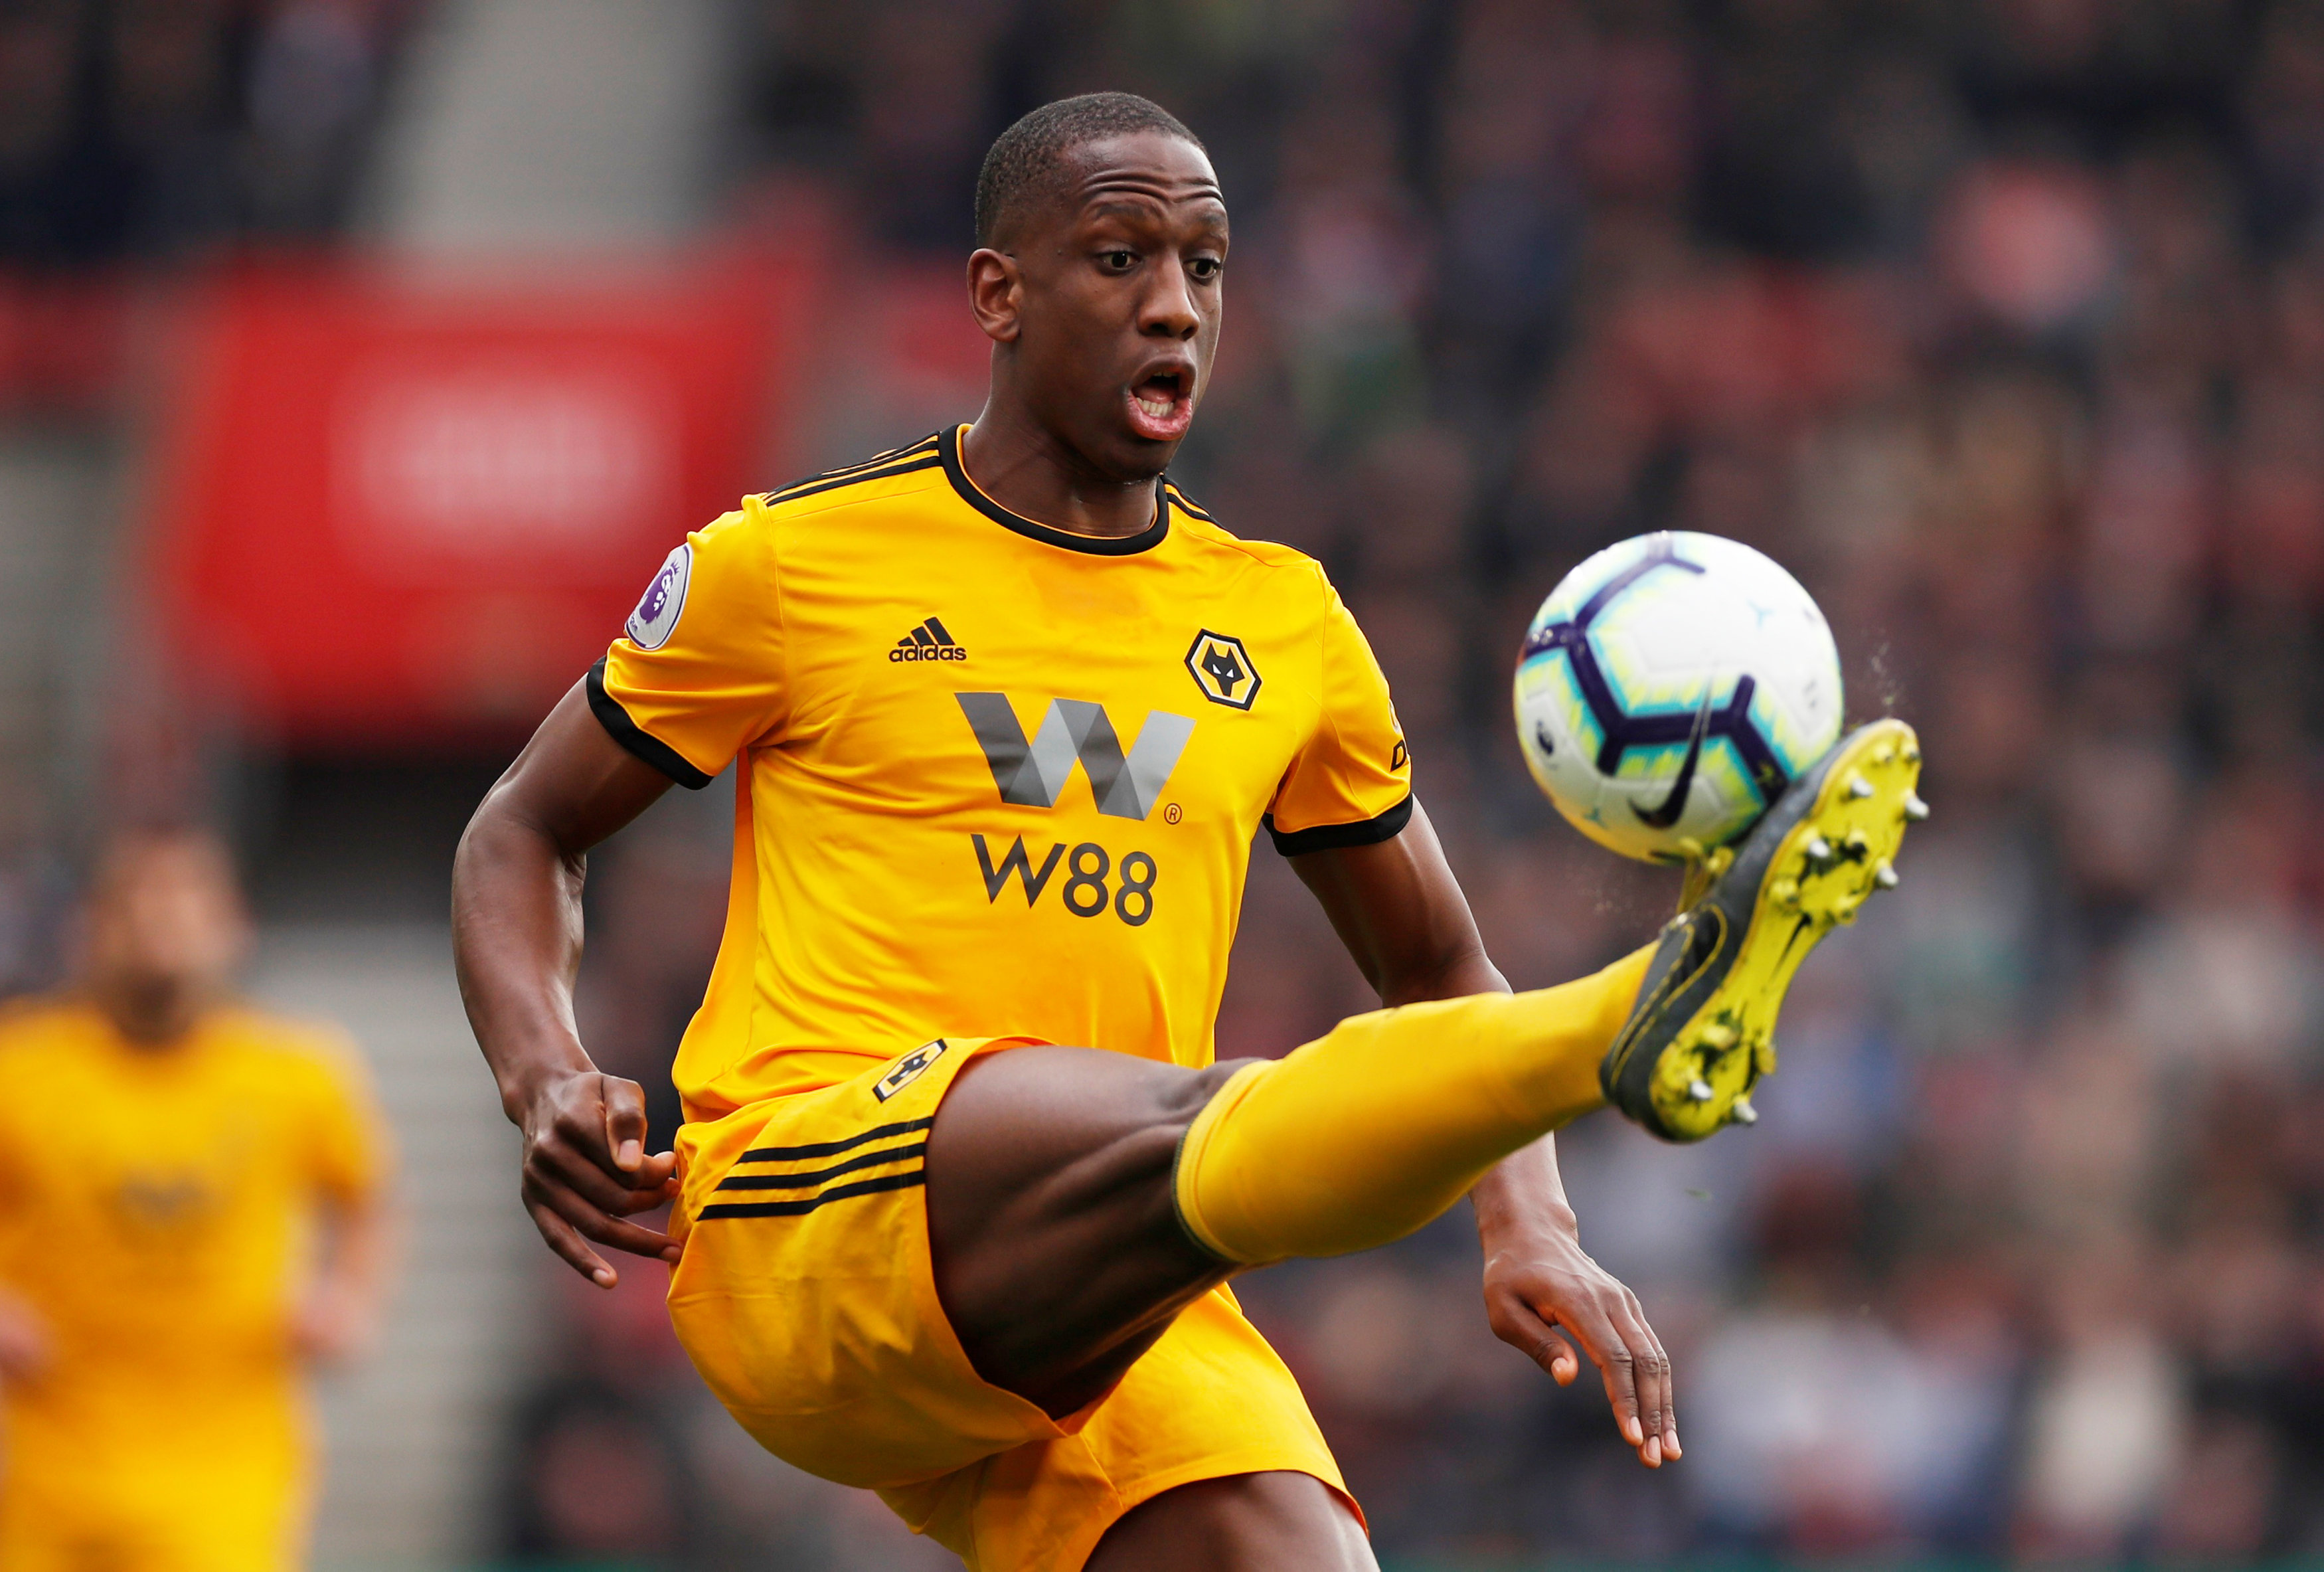 Season over for Wolverhampton defender Willy Boly after surgery on fractured fibula